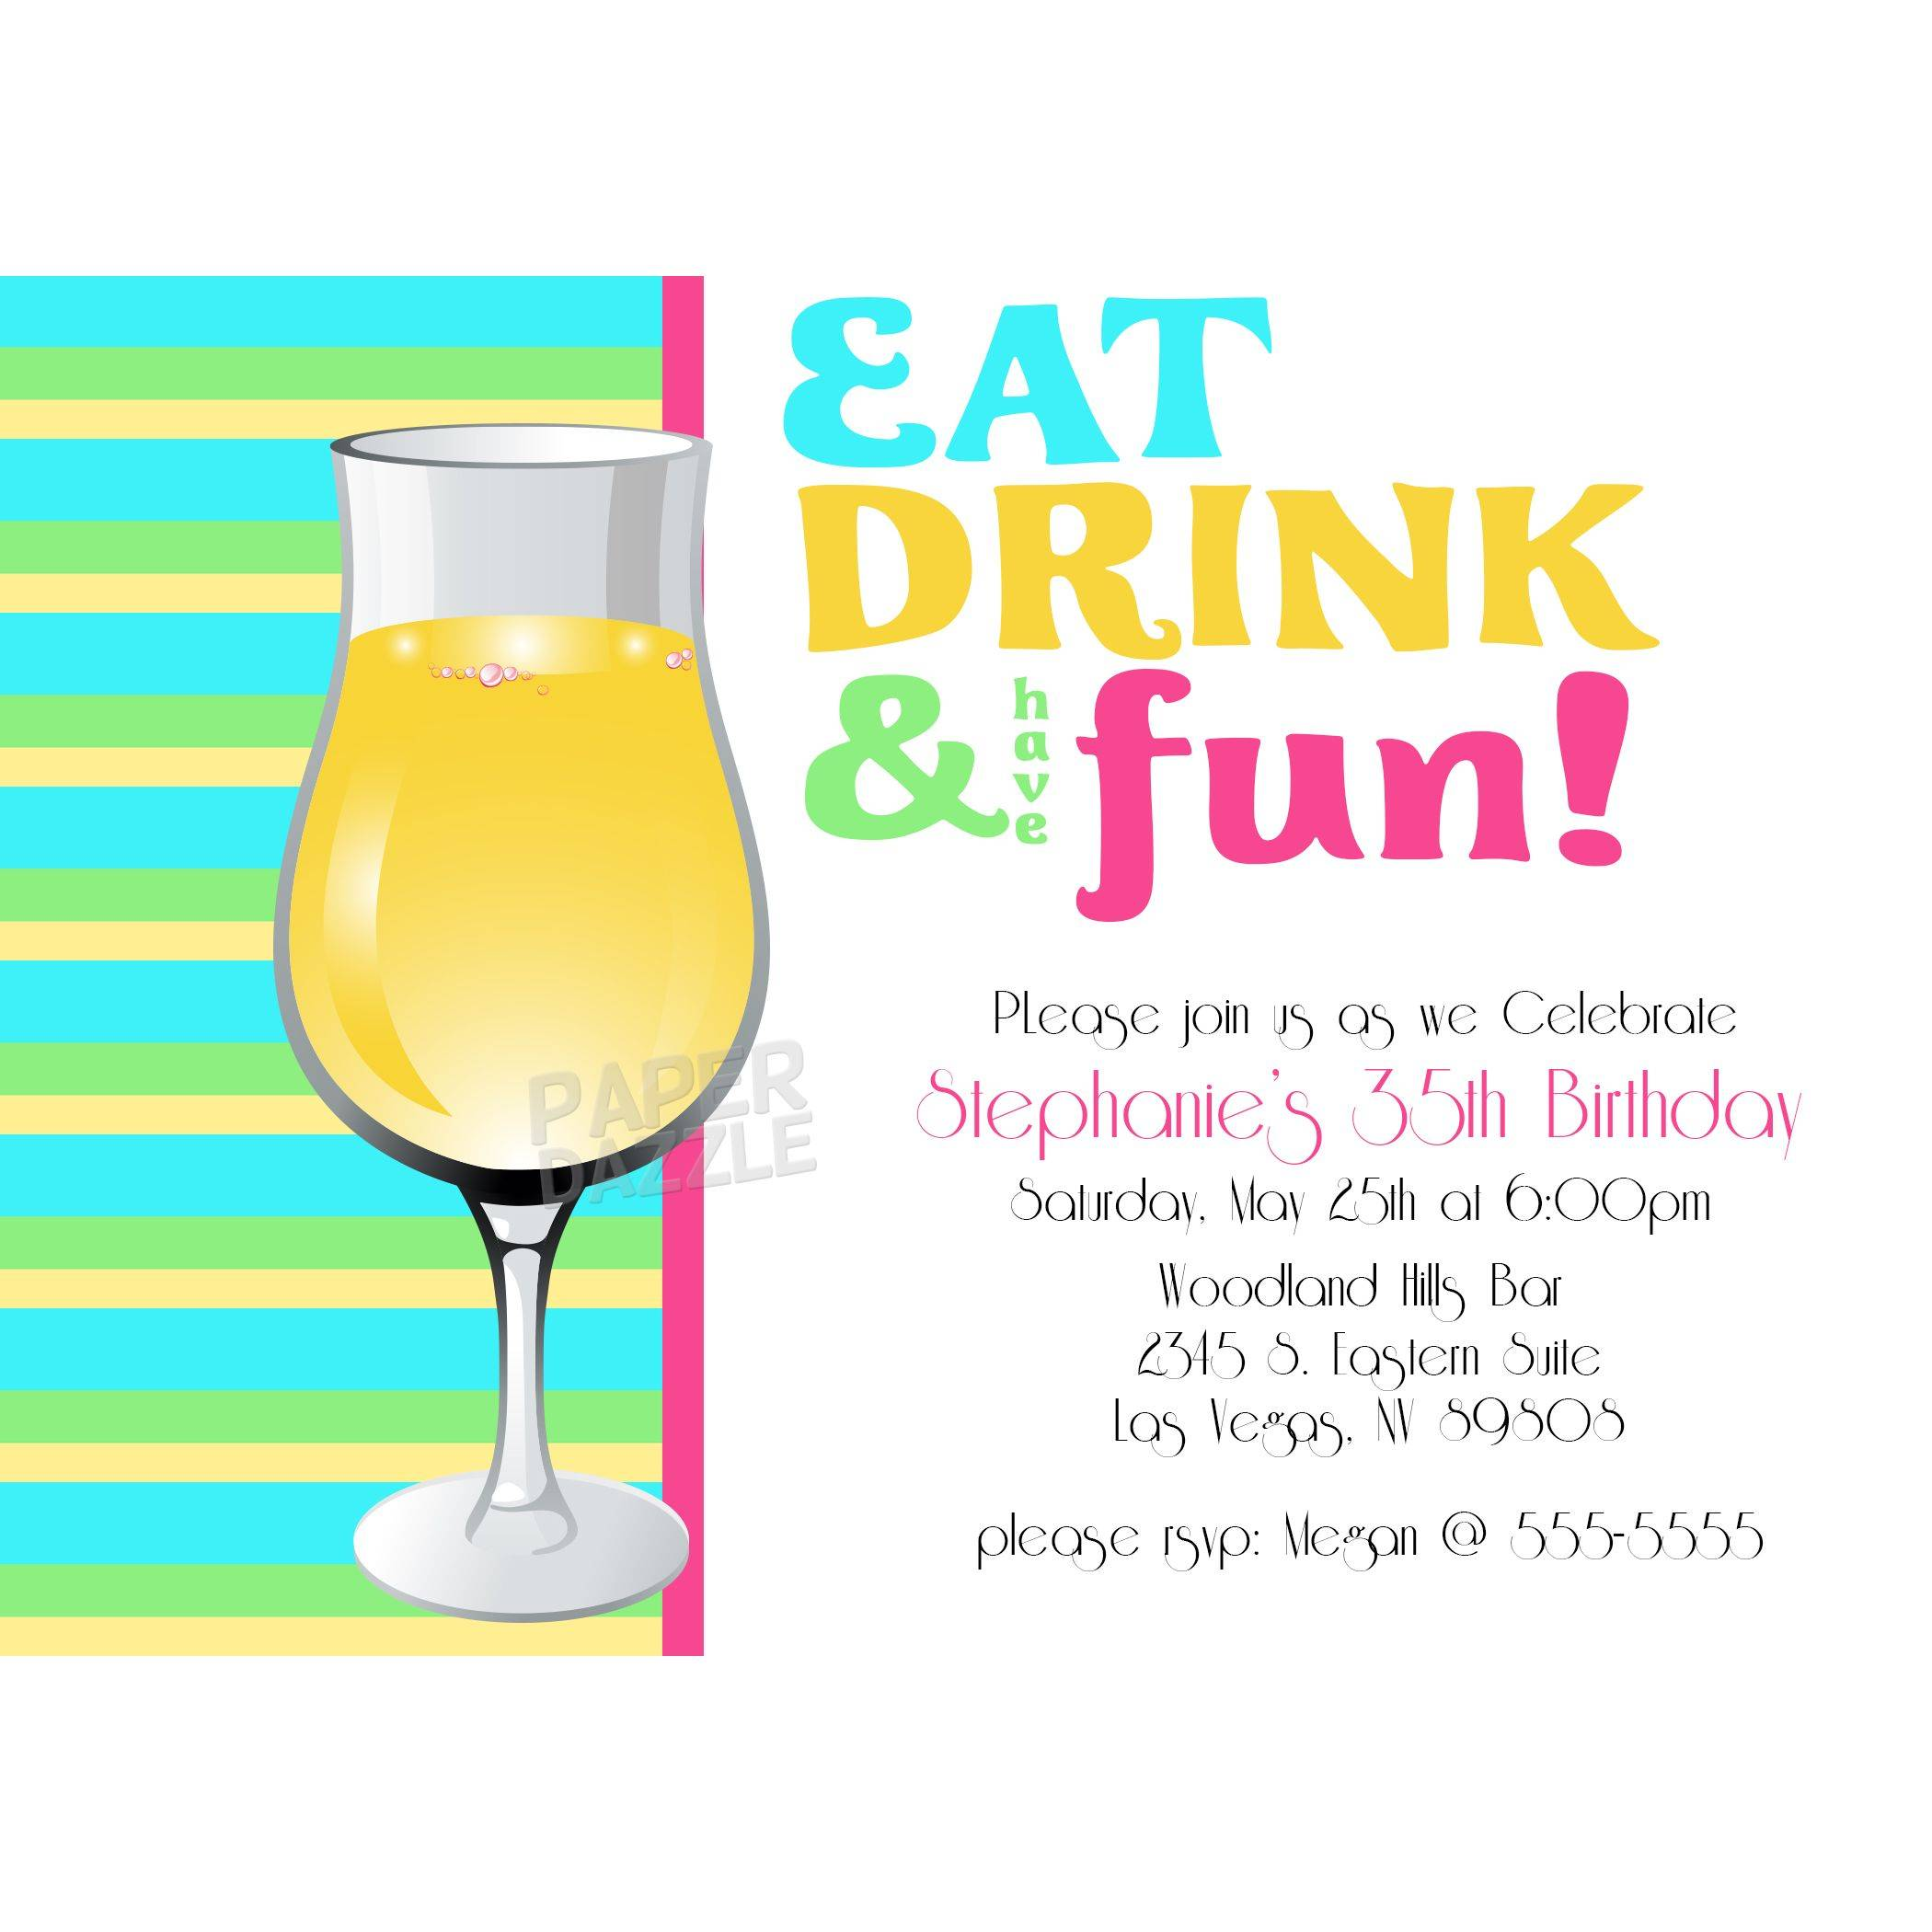 eat drink have fun party invitations